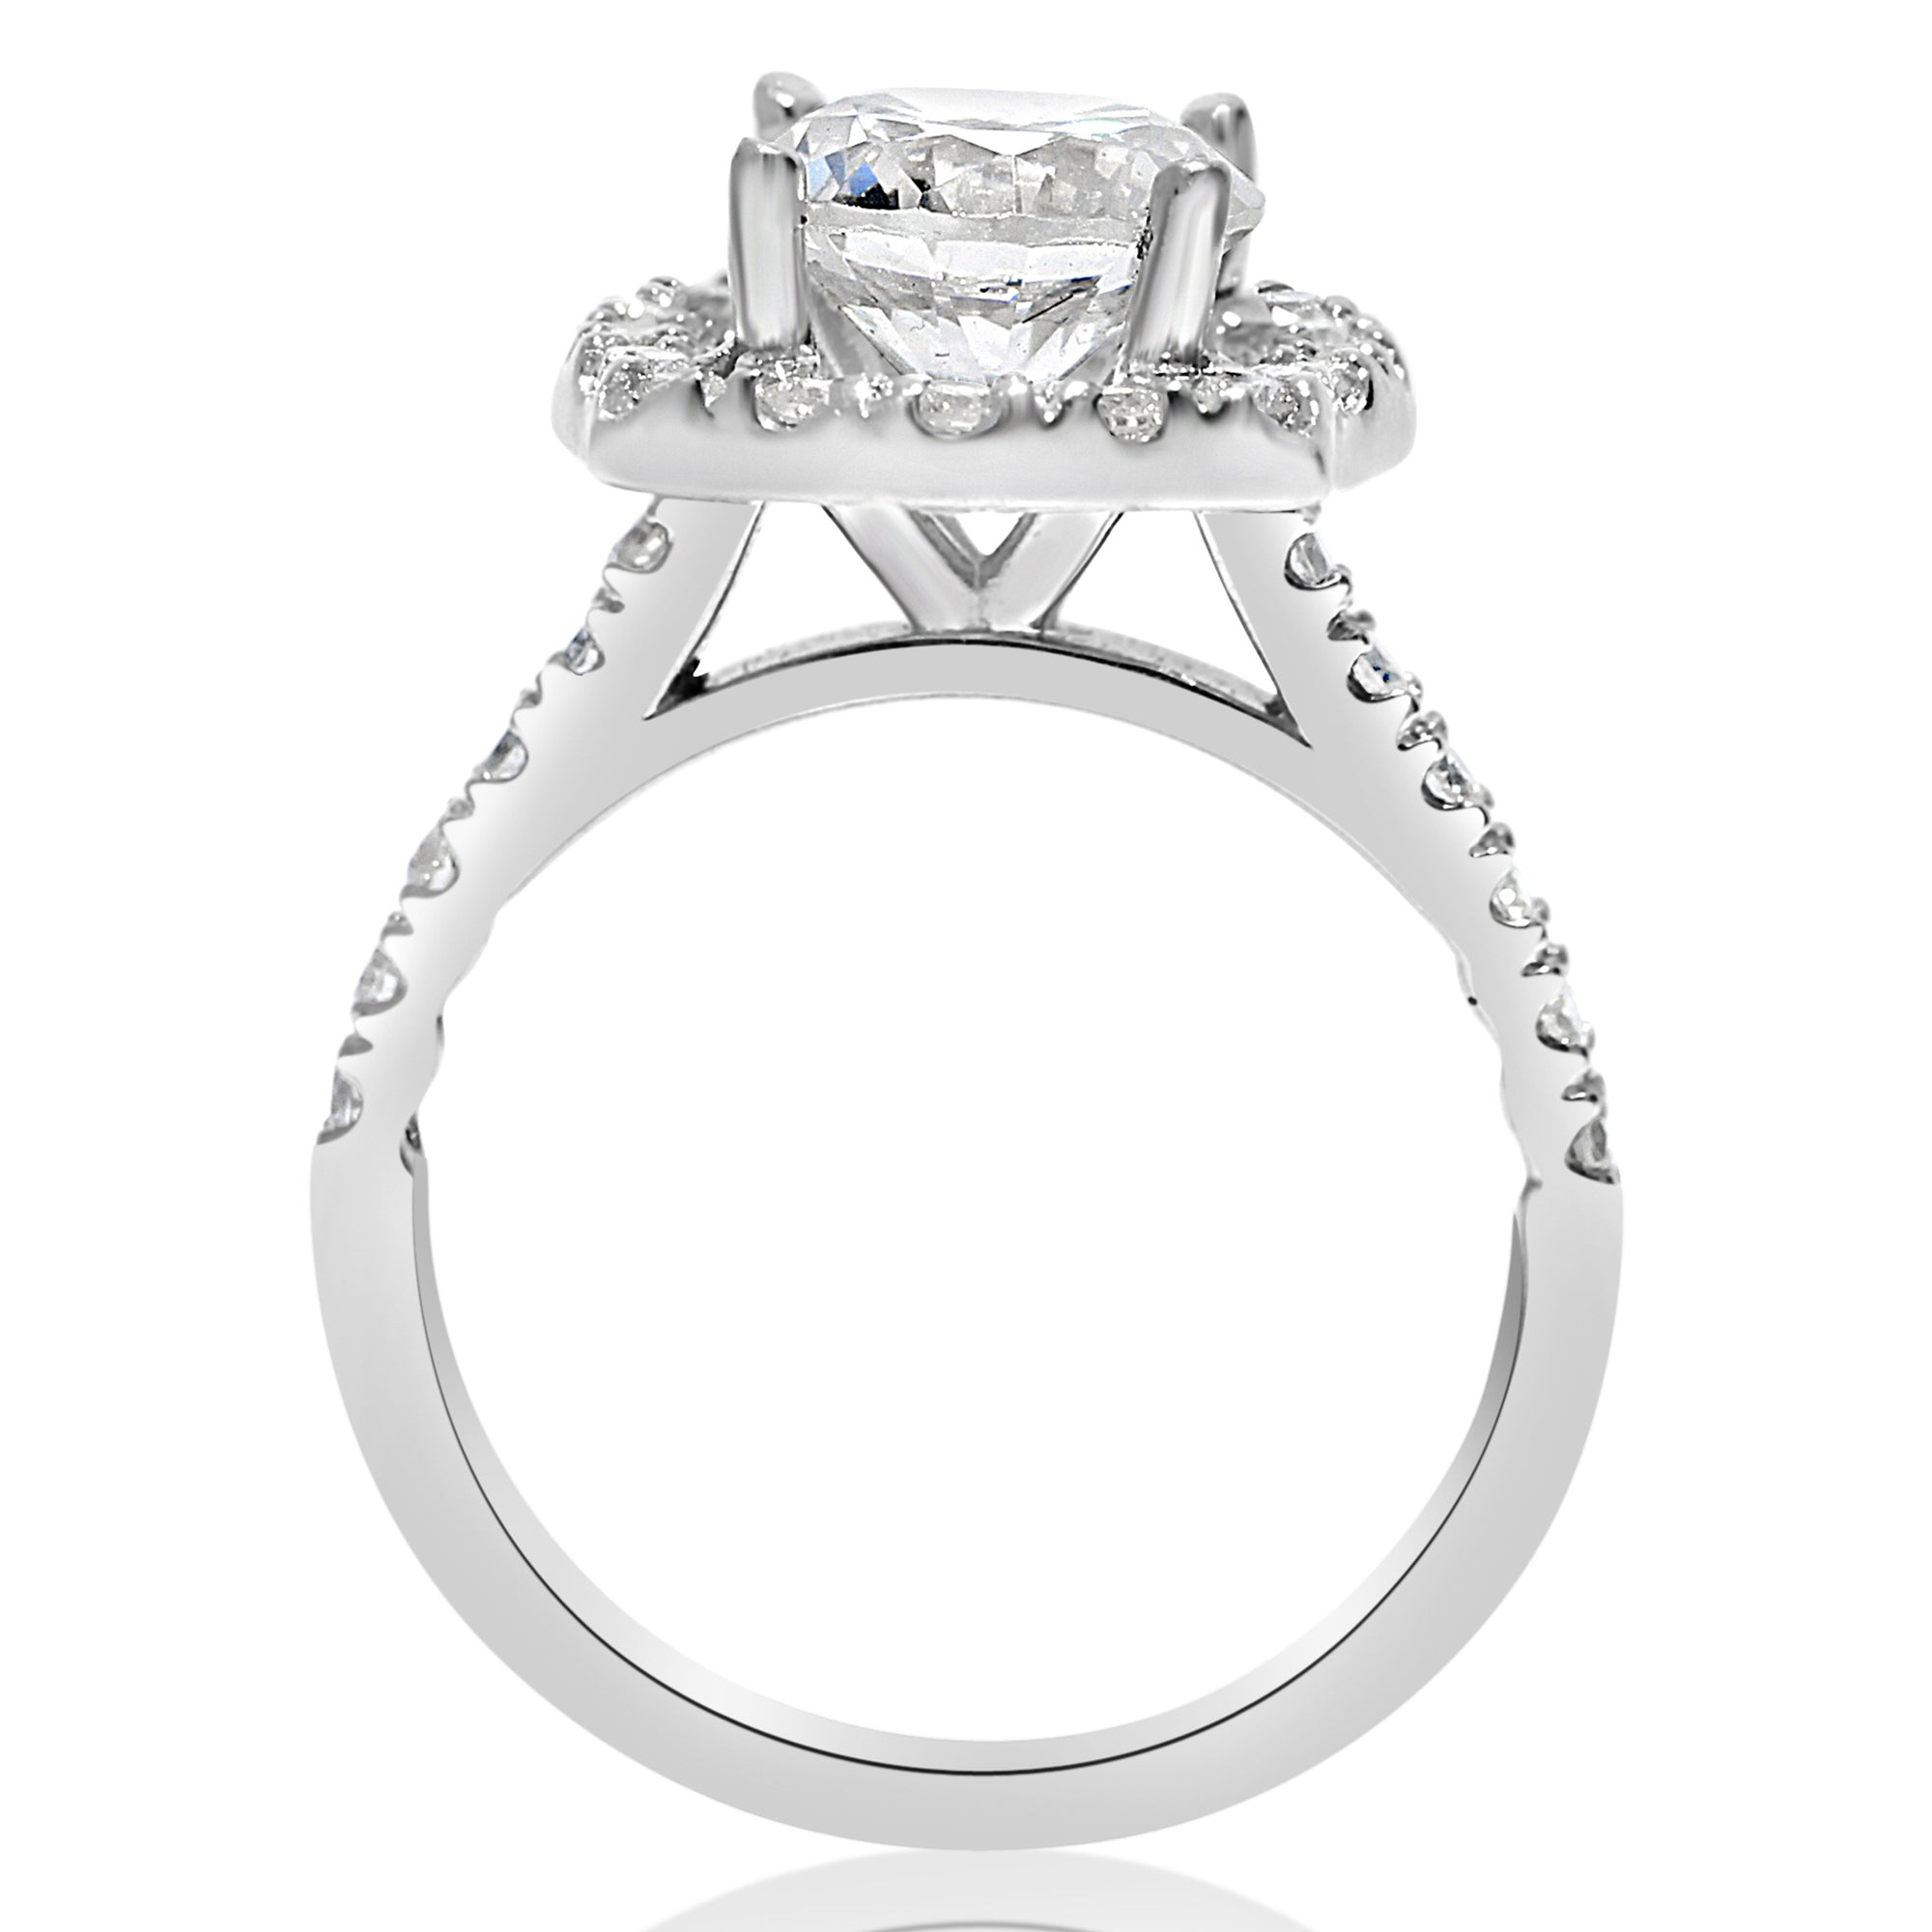 engagement platinum products pave ring duttsonrocks bespoke pav diamond rings tier collections set